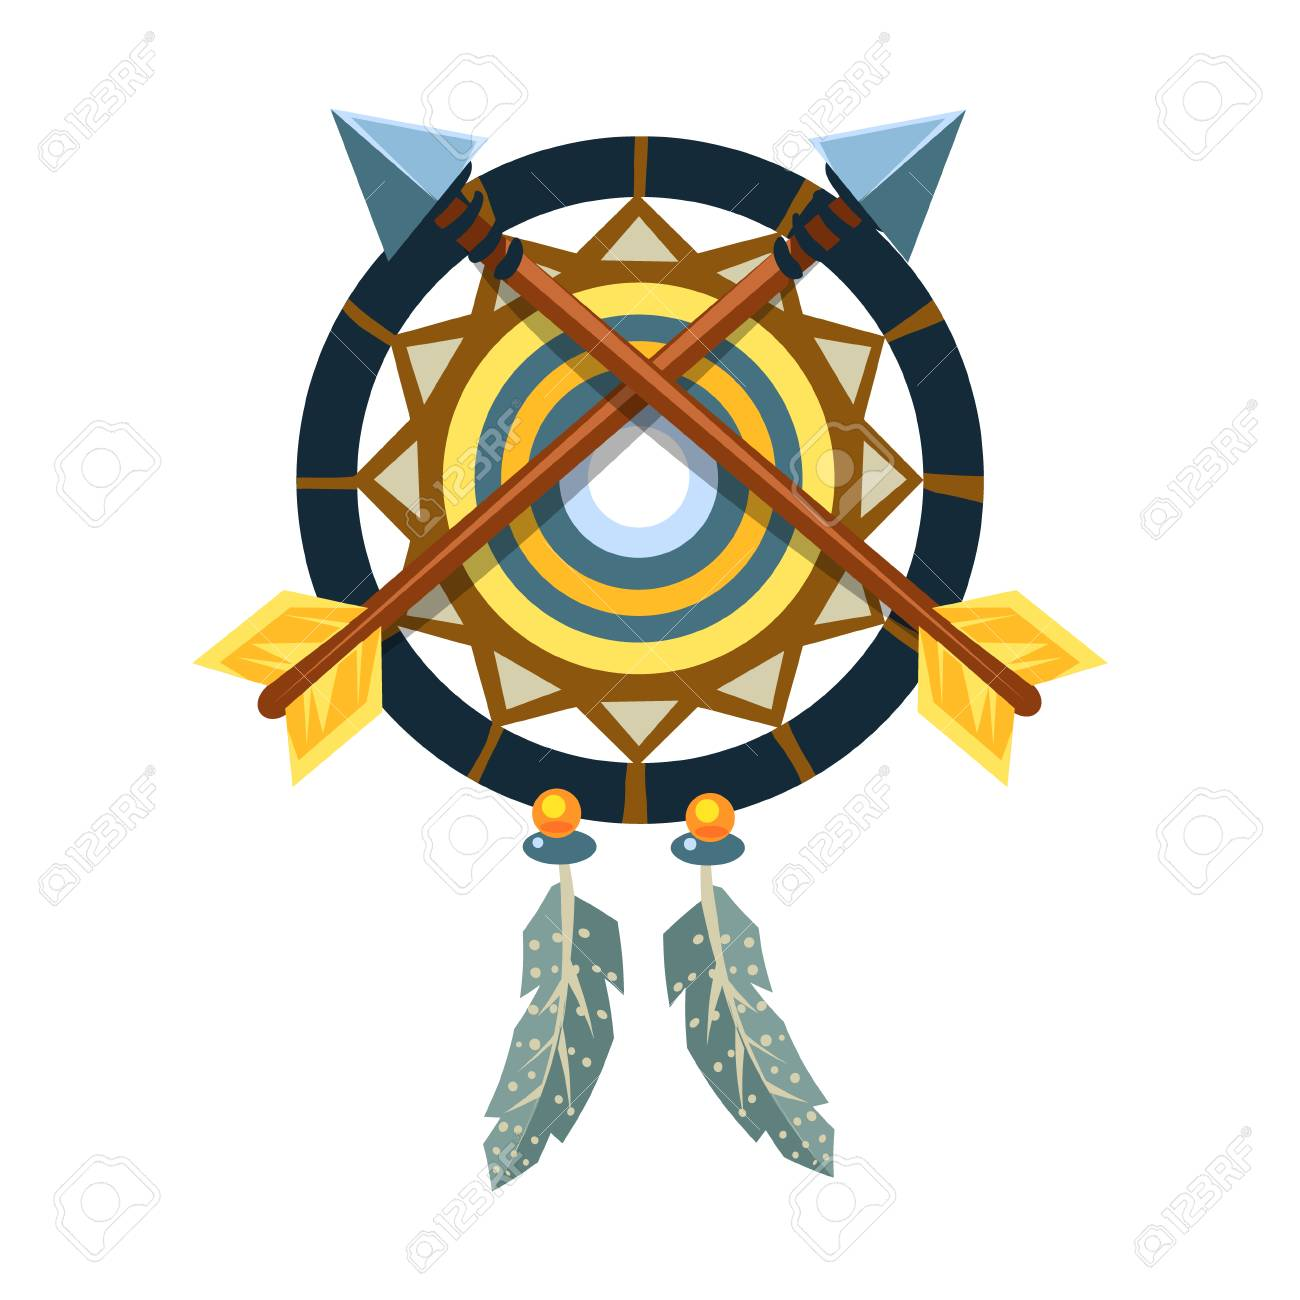 Dreamcatcher Charm With Crossed Arrows Native American Indian